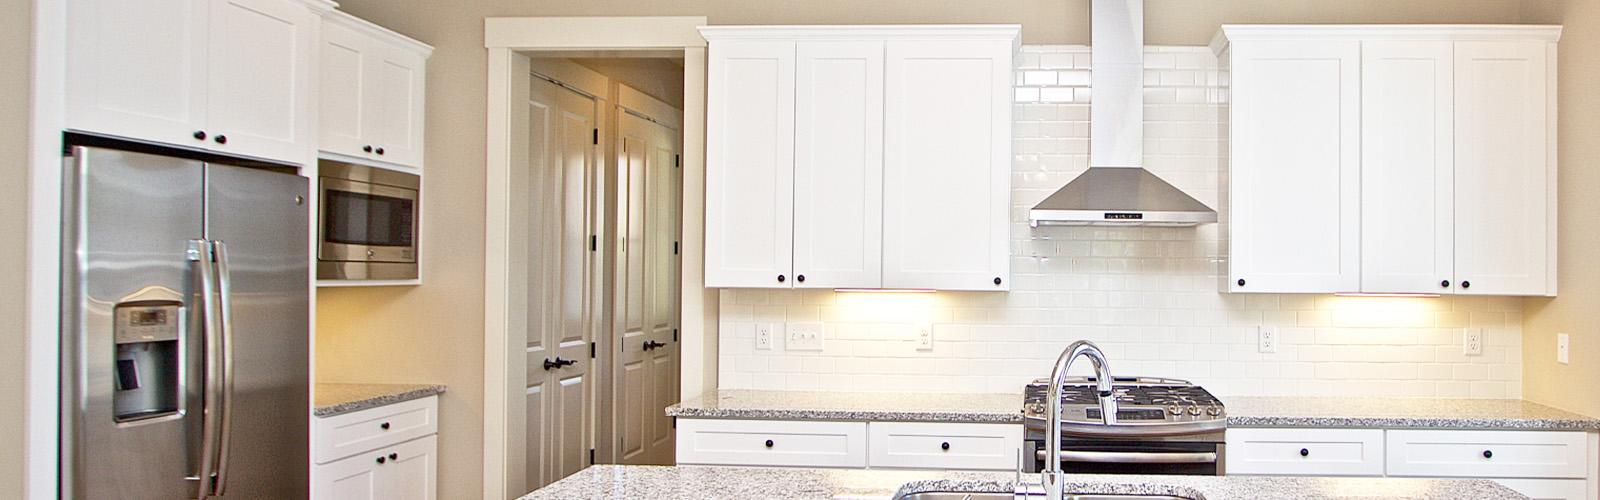 Used Kitchen Cabinets Houston Tx Home Wholesale Cabinets Warehouse